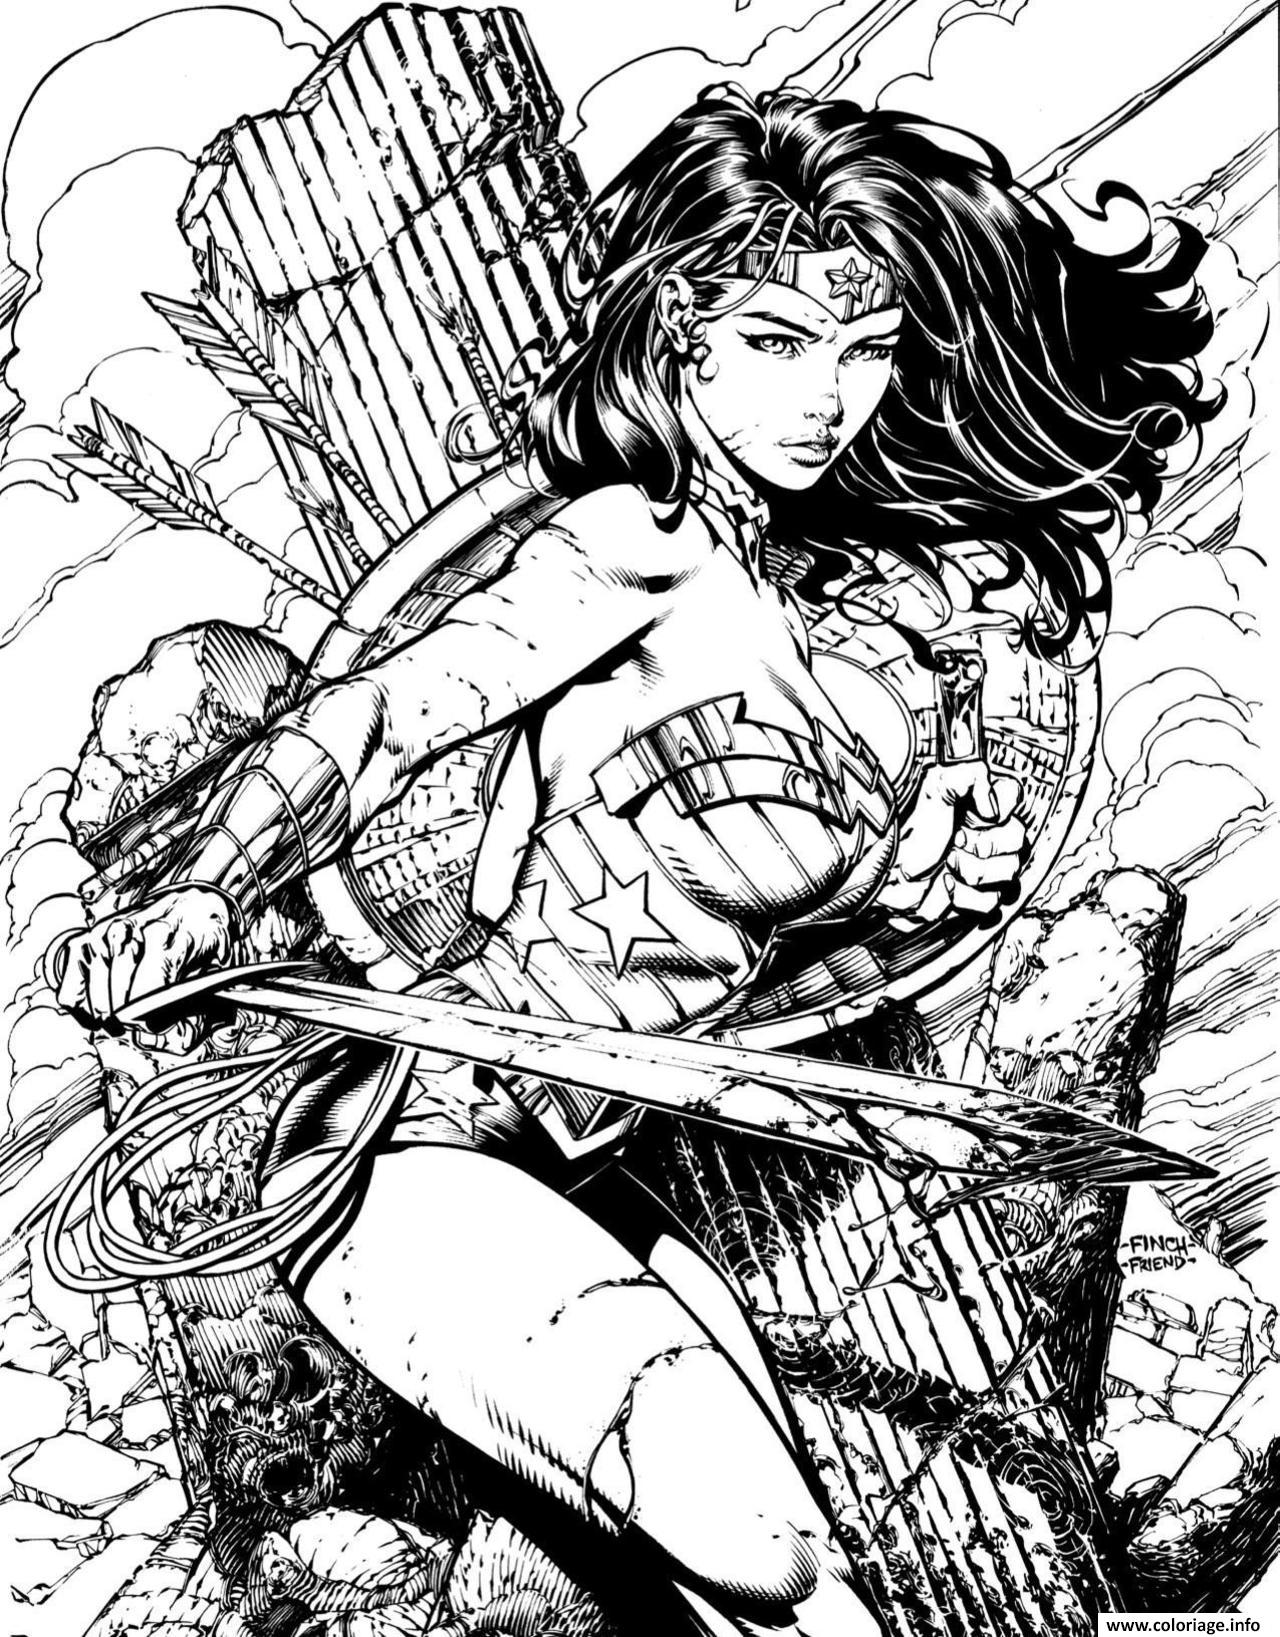 Dessin wonder woman pour adulte book dc comics Coloriage Gratuit à Imprimer